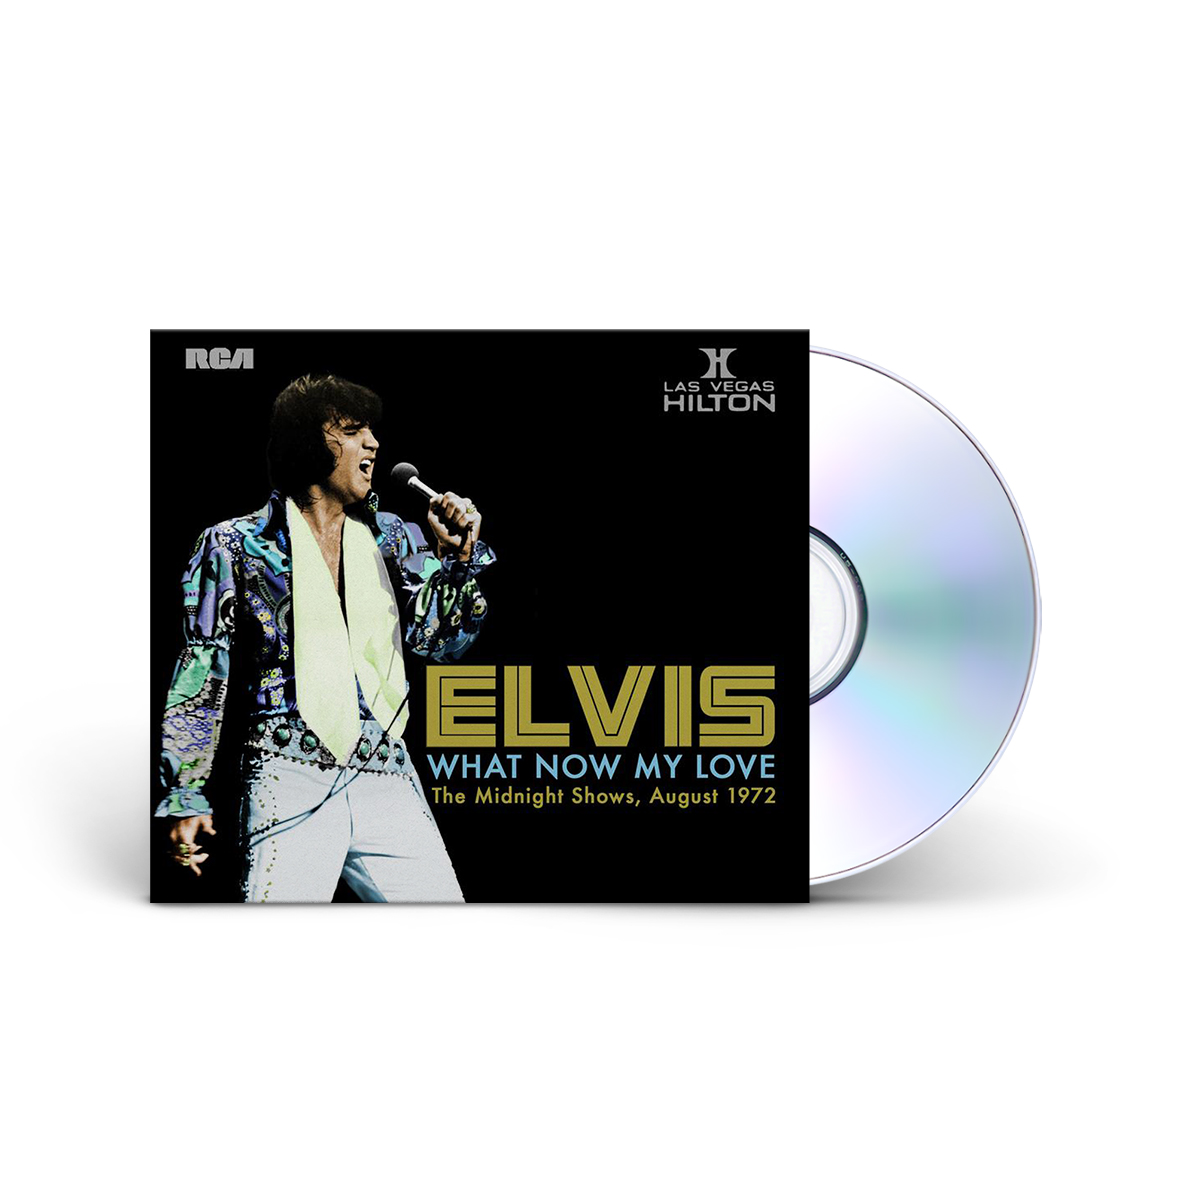 ELVIS: What Now My Love FTD (2-disc) CD